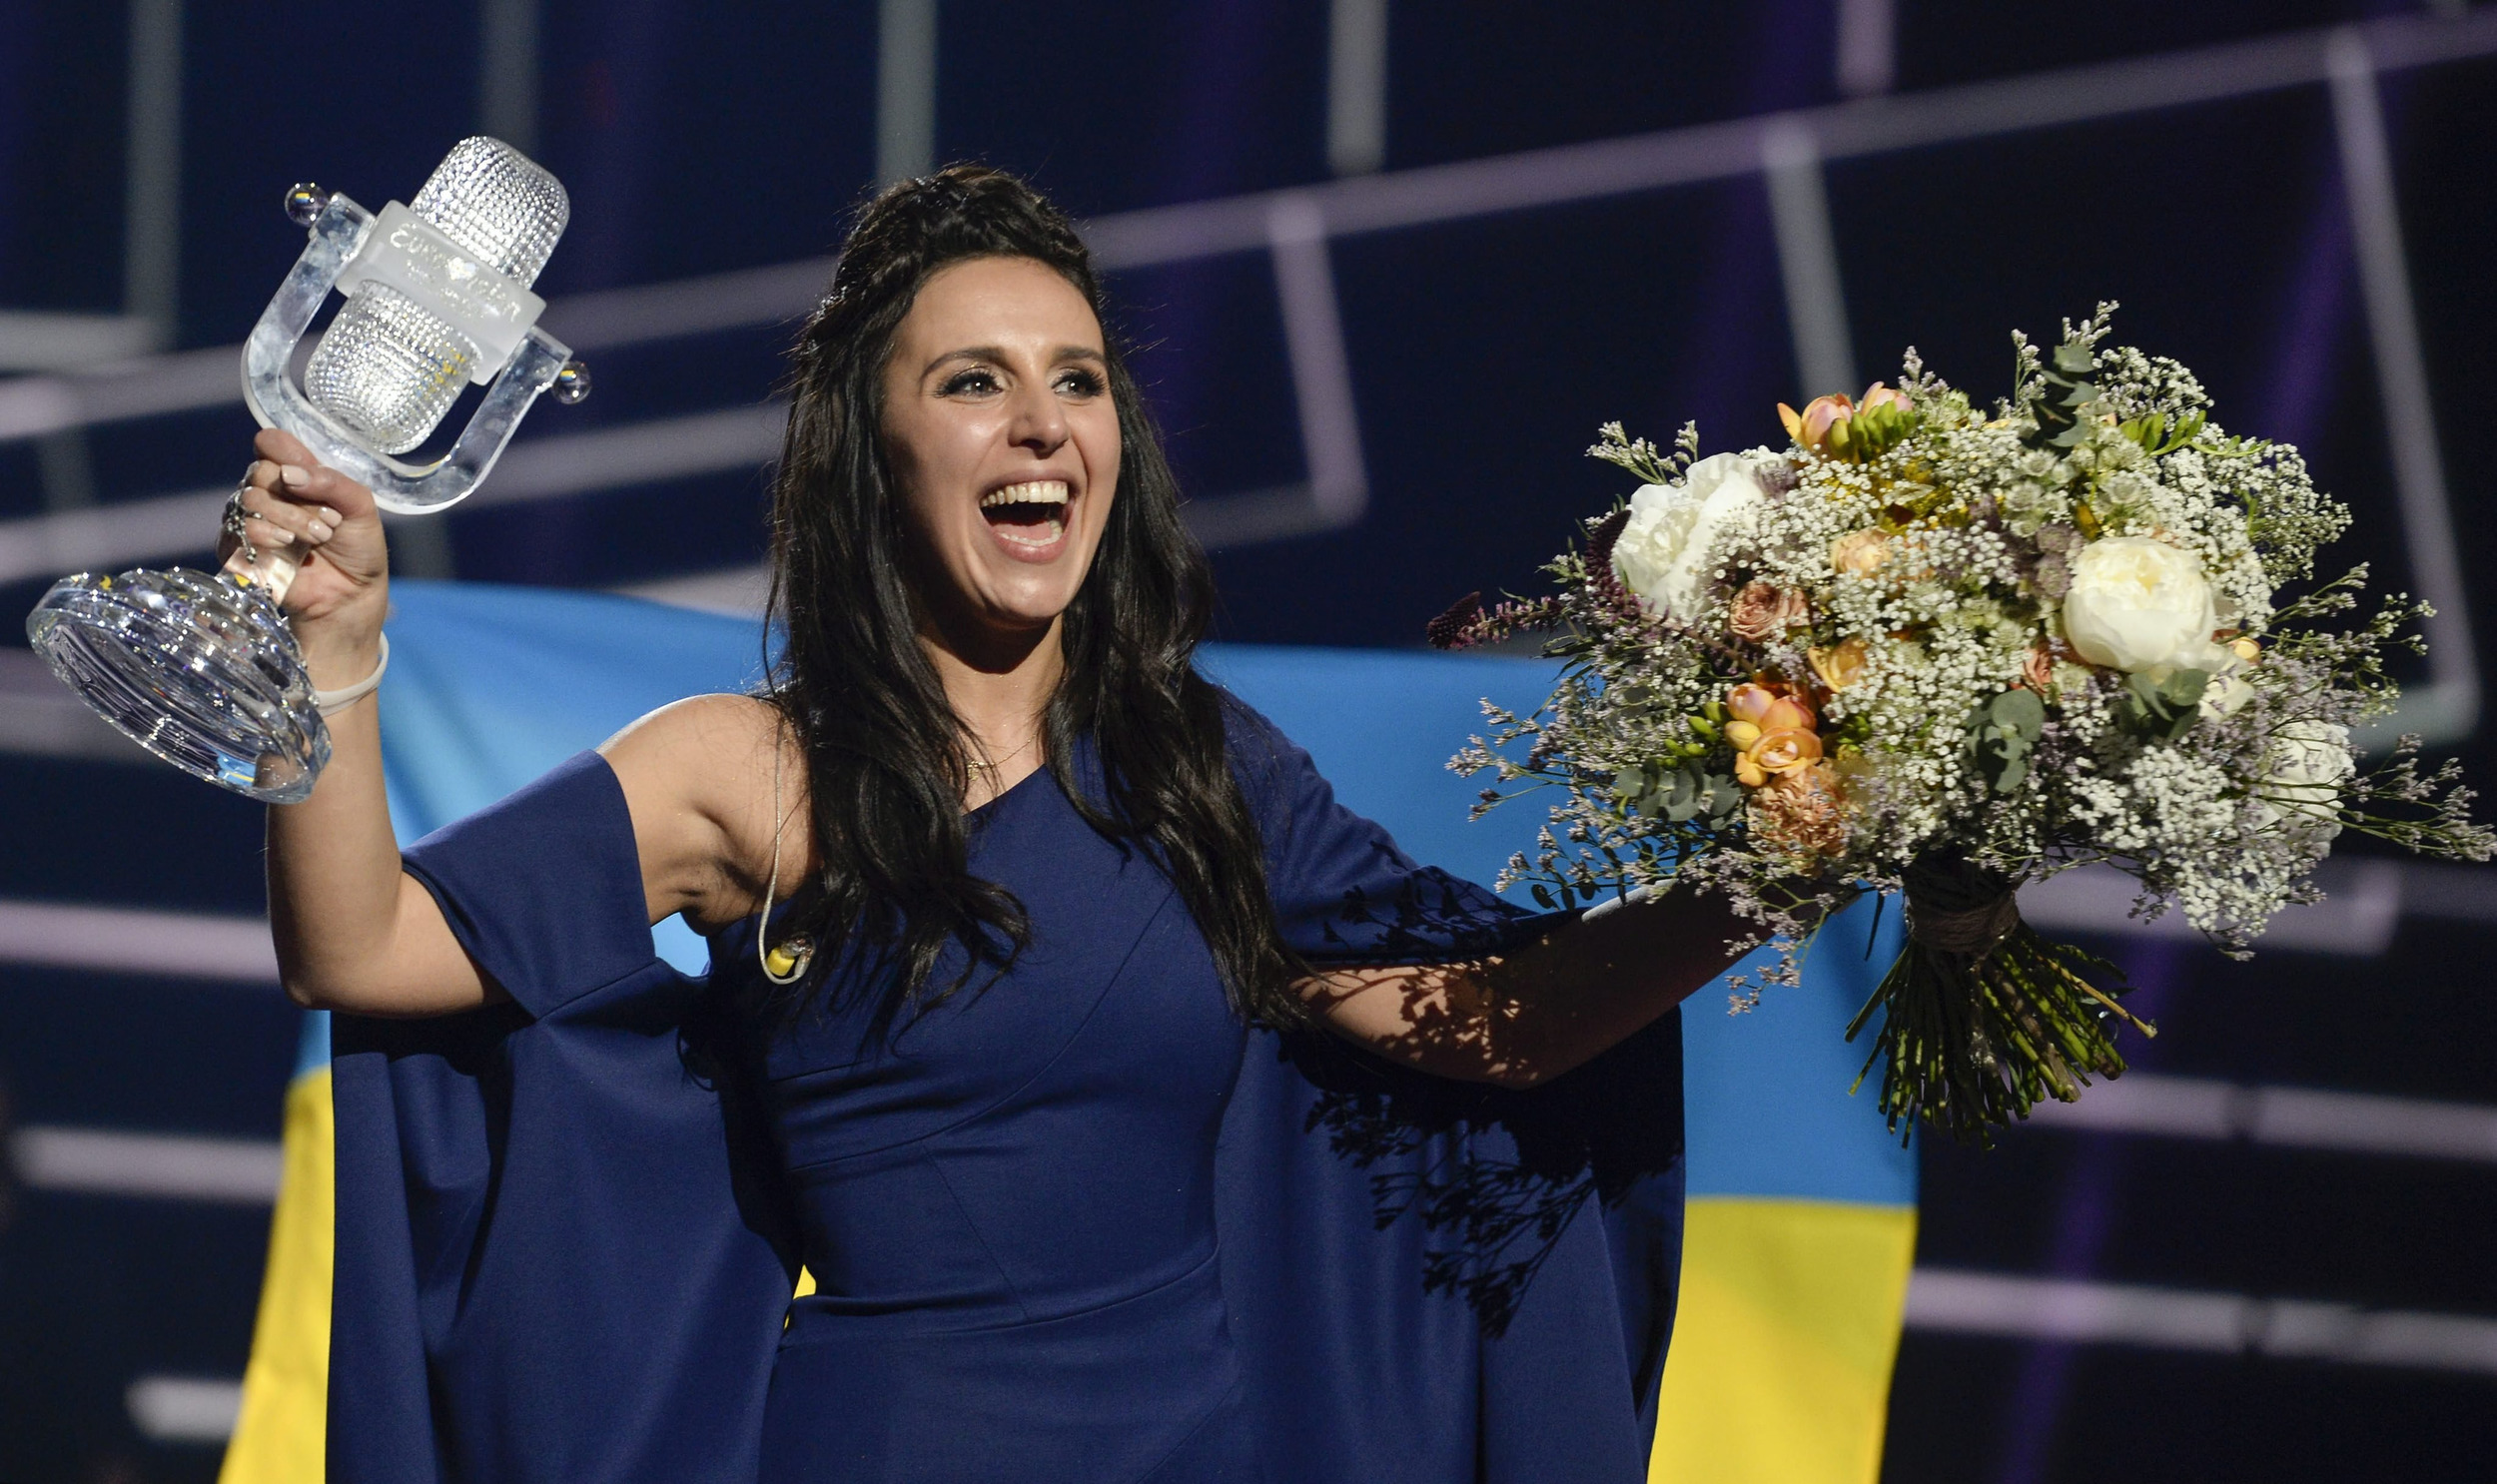 Ukrainian winner of Eurovision 2016 Jamala got married 04/26/2017 100